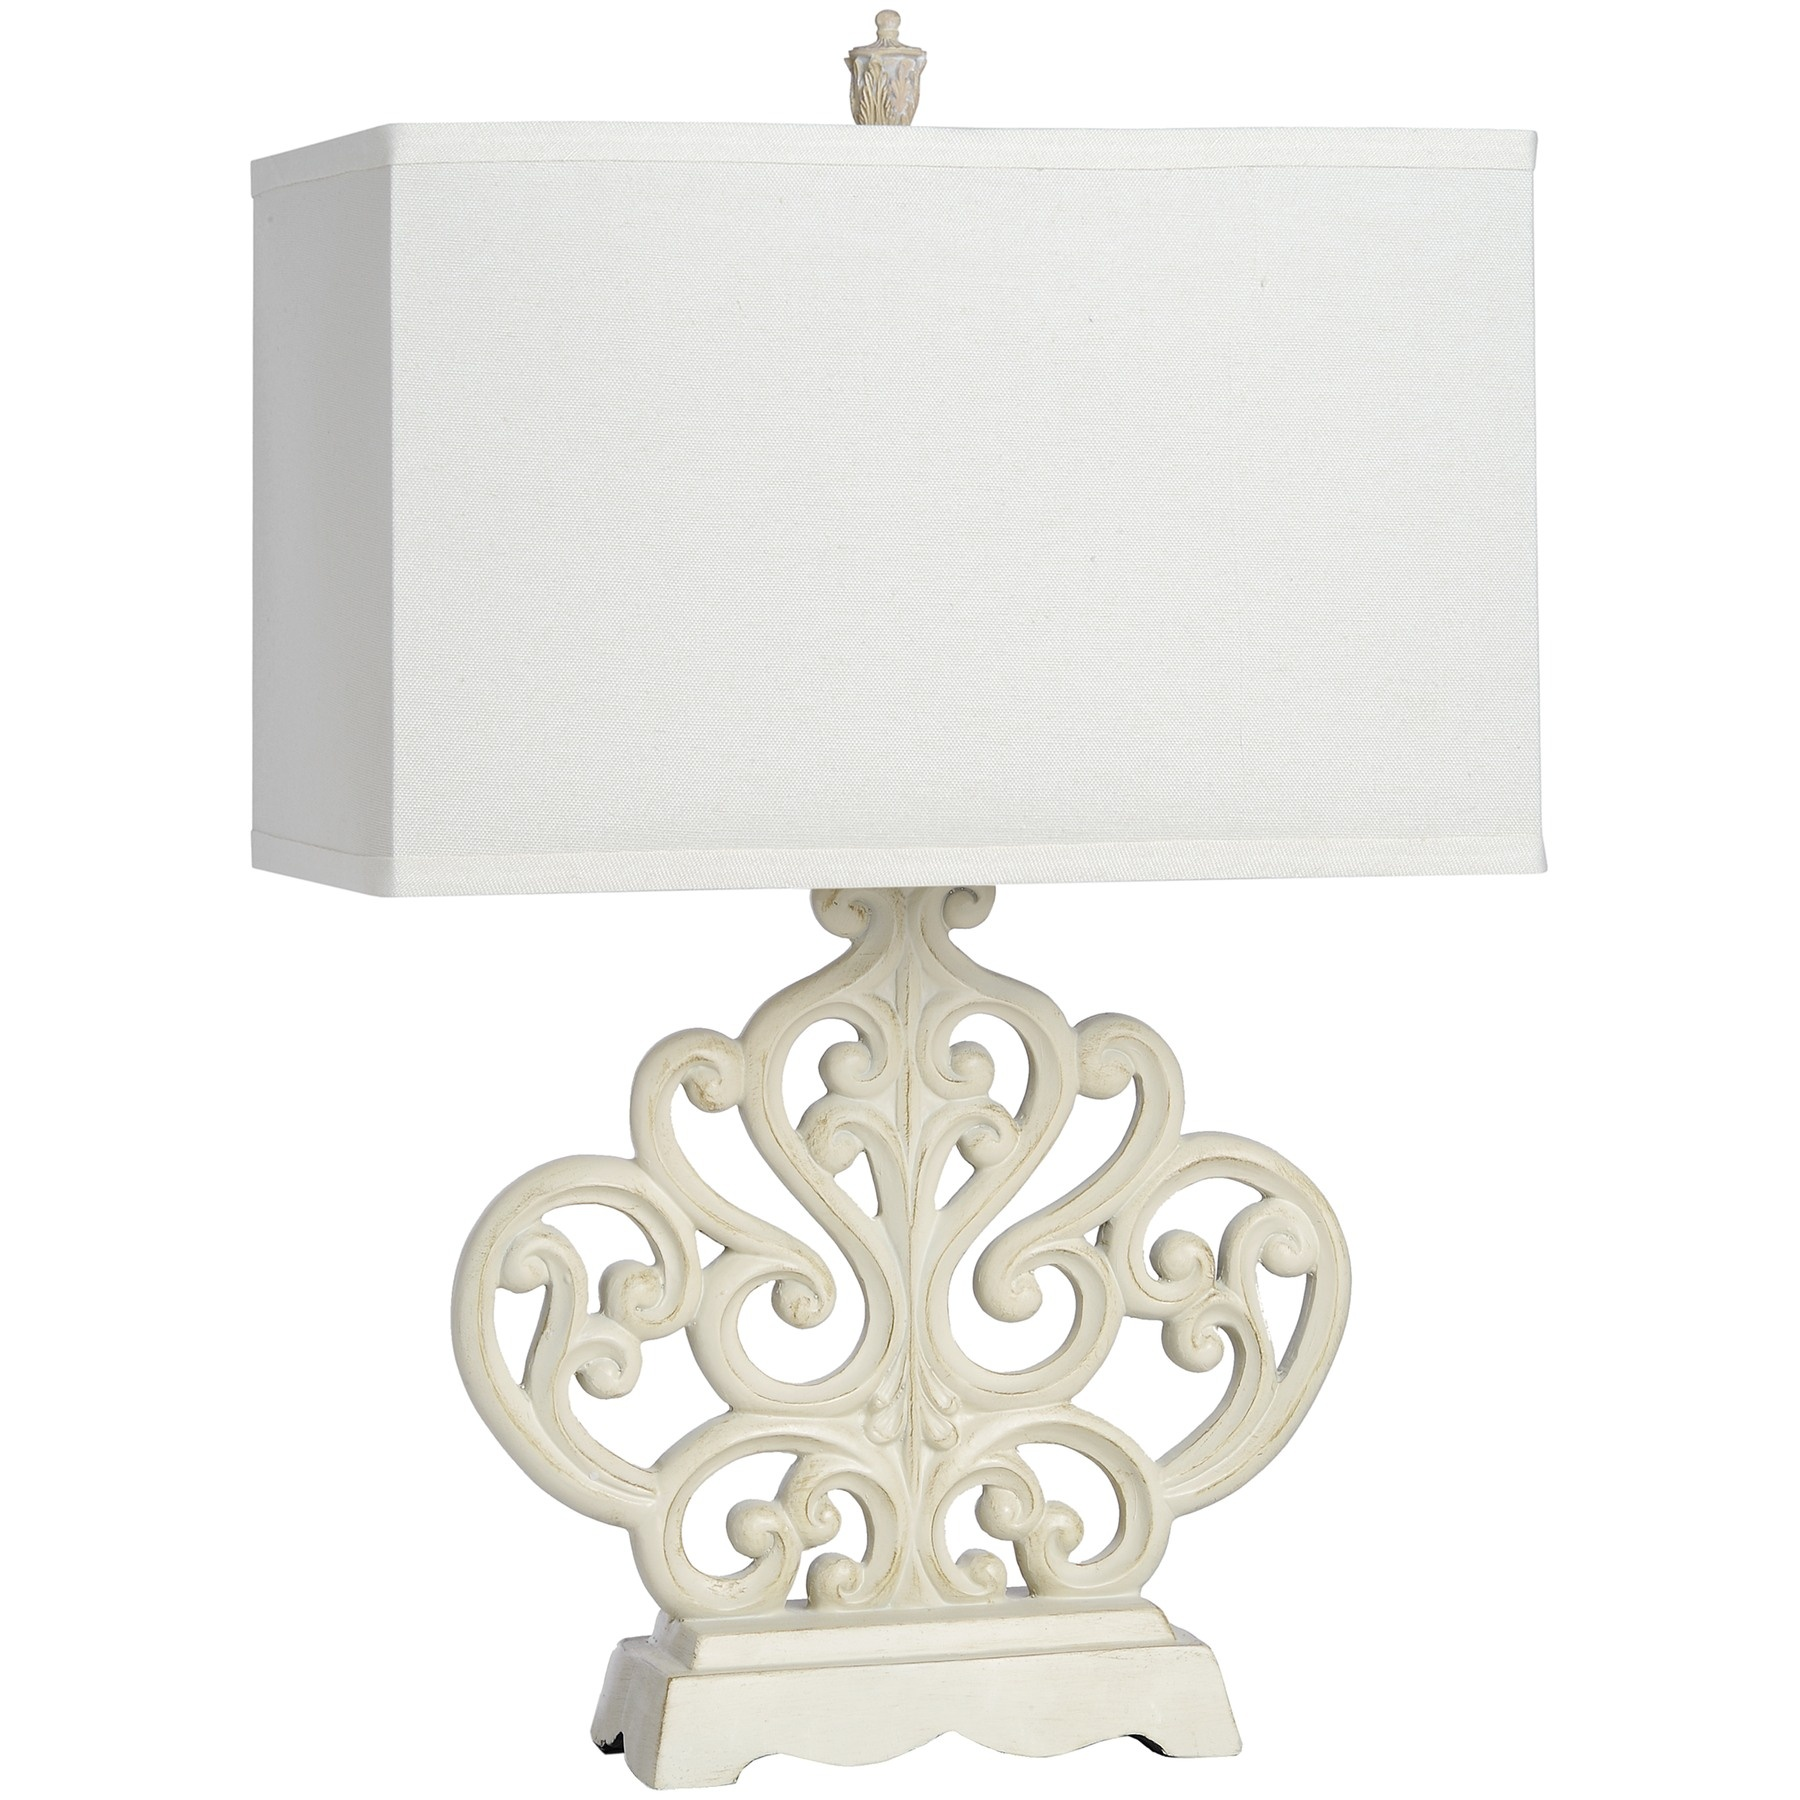 Buy french country table lamp rectangular swanky interiors french country table lamp rectangular mozeypictures Choice Image